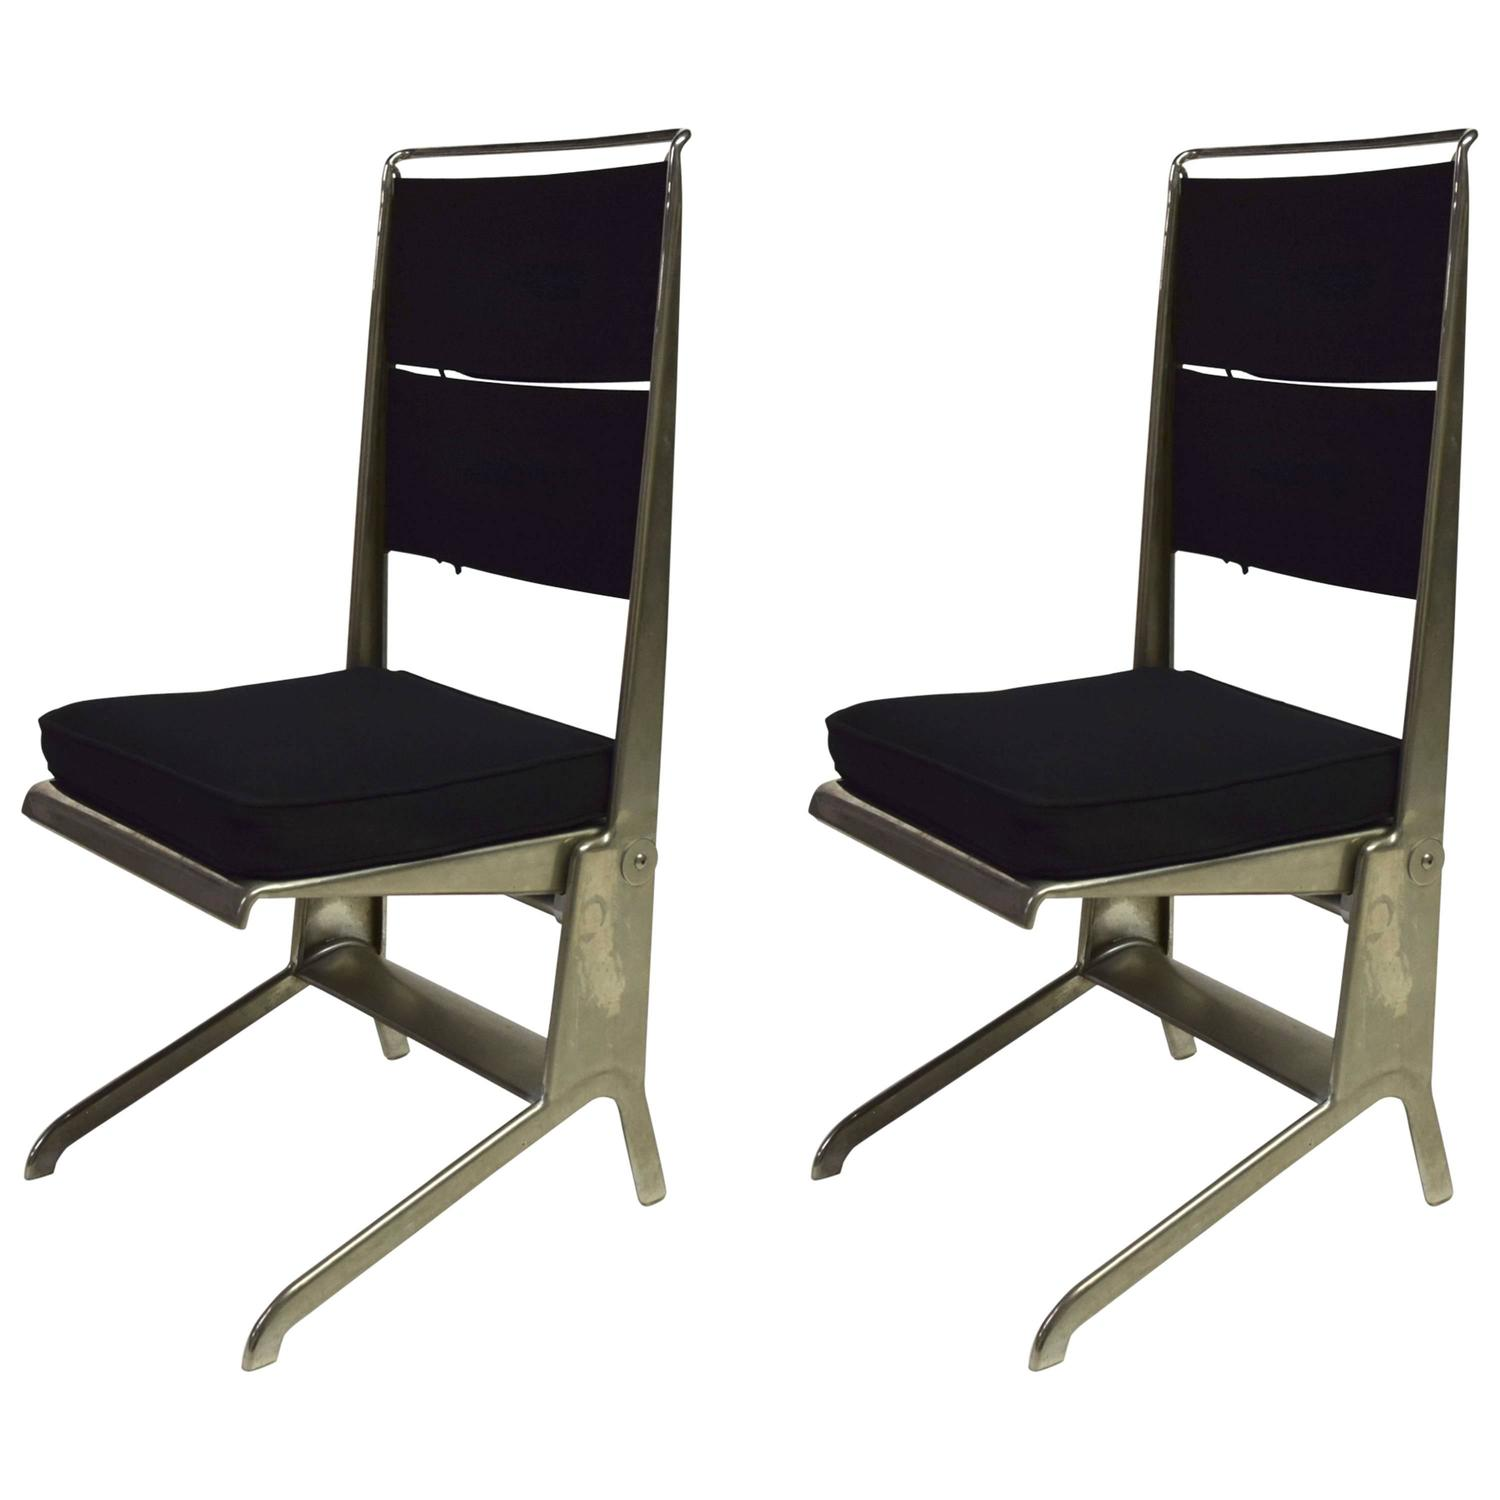 Pair of Jean Prouvé Folding Chairs Designed 1930 Manufactured by